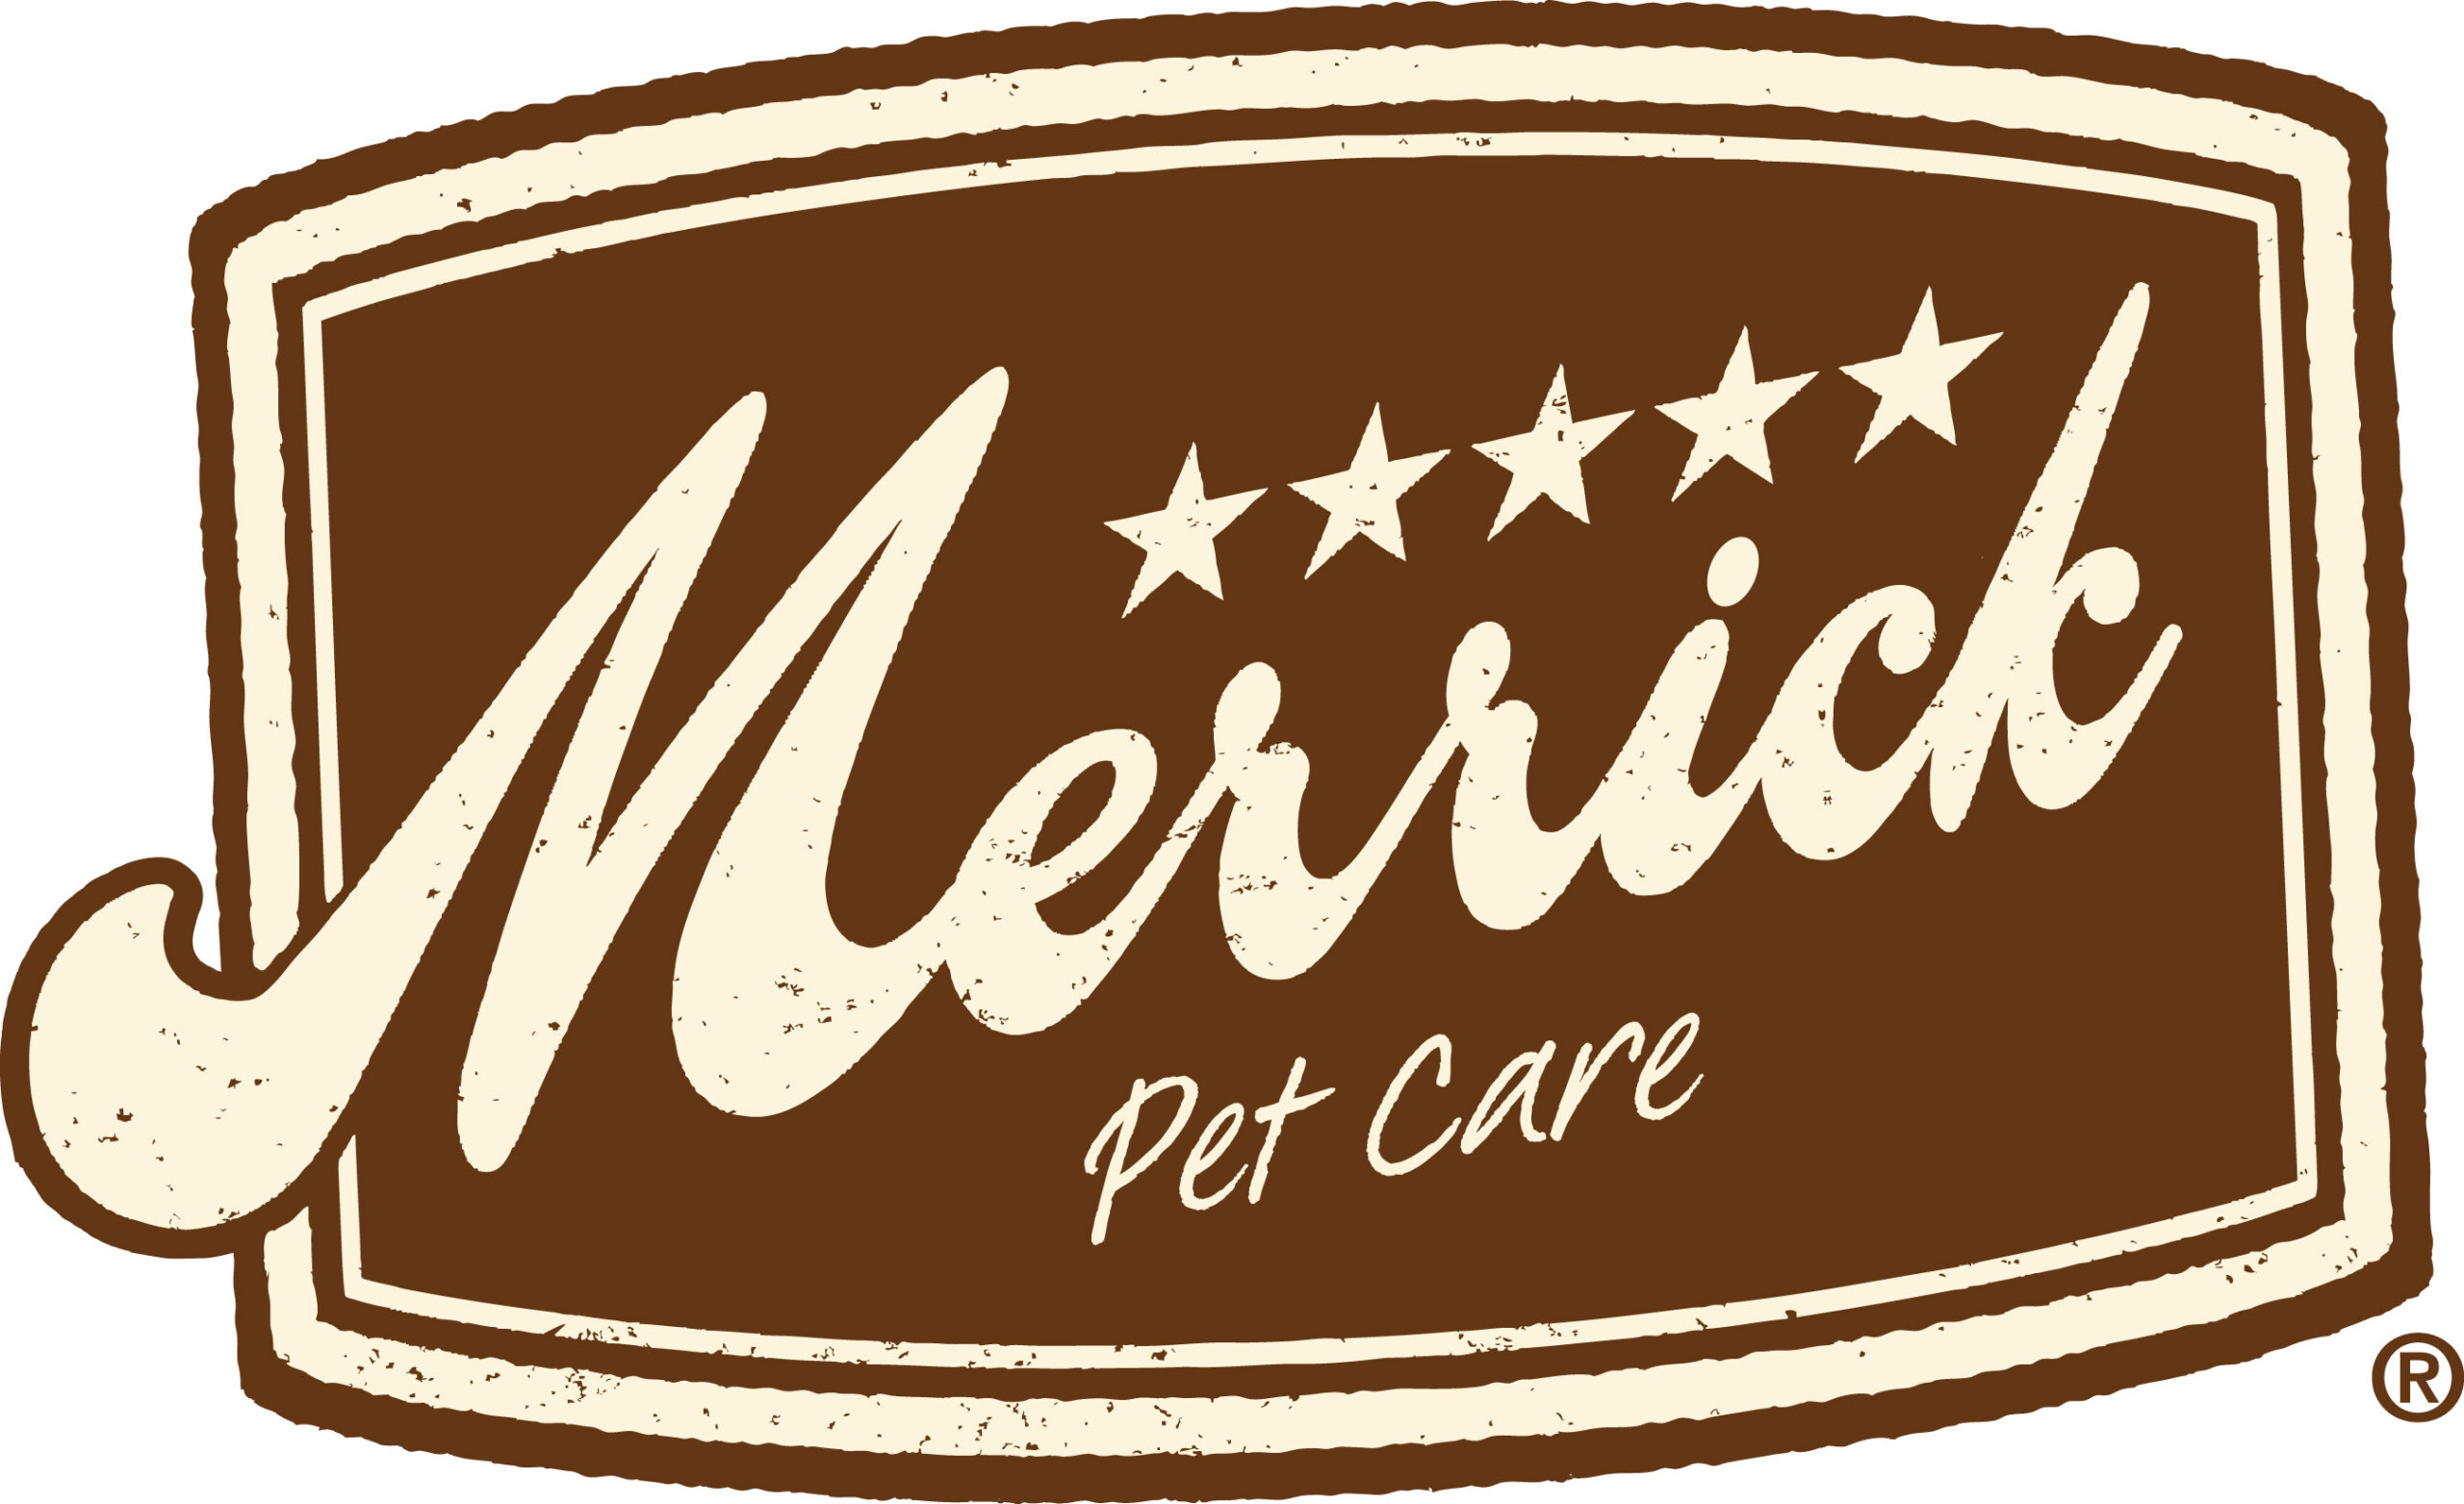 Merrick Pet Care Launches 'BBQ 4 Good' Campaign in Support of Shelter Dogs, Local BBQ Restaurants